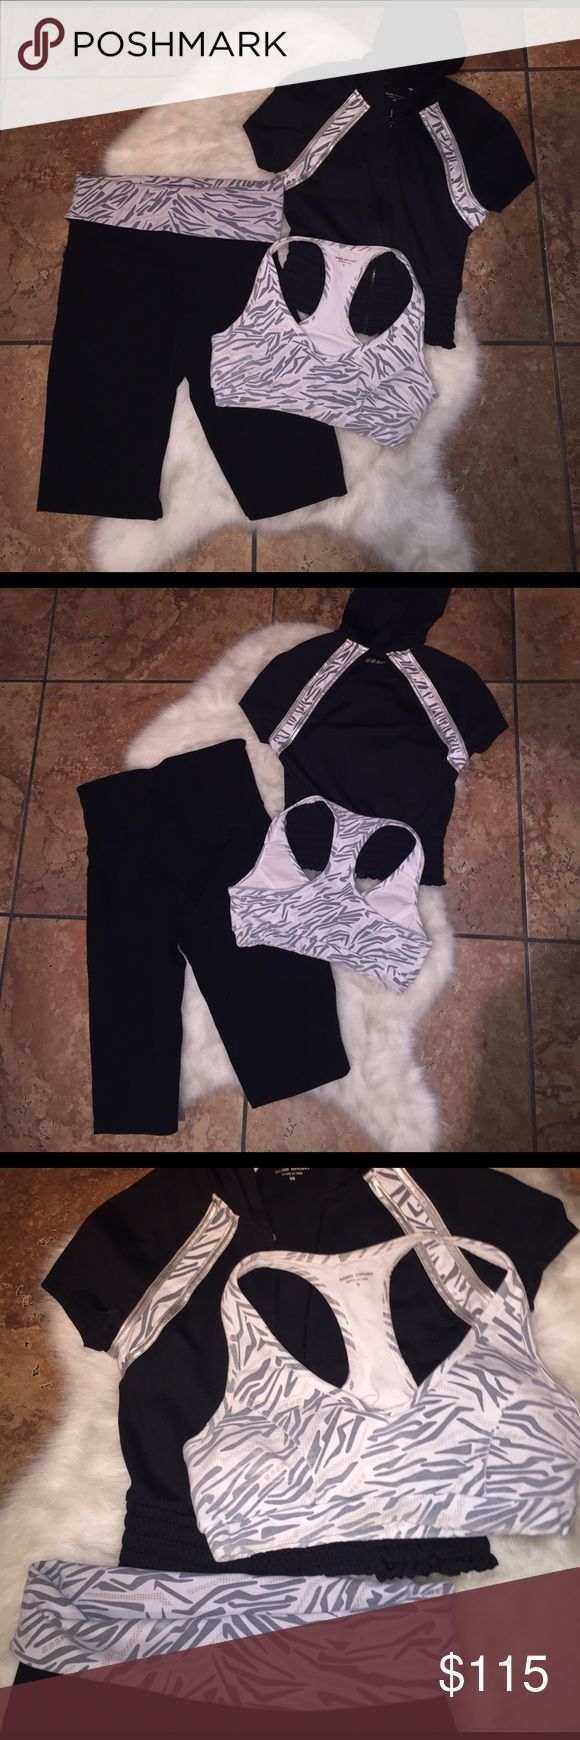 Bebe 3 or 4 Piece Gym Workout/ Yoga Set ✨Capri Yoga Pant - high waist or roll down, unique abstract print, ✨ V Neck Abstract Print Sports Bra, ✨ $20 to add the shorts (4 pieces for $150) Option to pair with - Silver Stretch Workout Short NWOT, All Size Small, ✨Short Sleeve Crop Hoodie super cute, zip front, size XS fits like a S (meant to be cropped and cute). Some signs of wear on the white/grey just fading but overall good condition. Stretch fabric perfect for any workout. 💪🏼 bebe Other